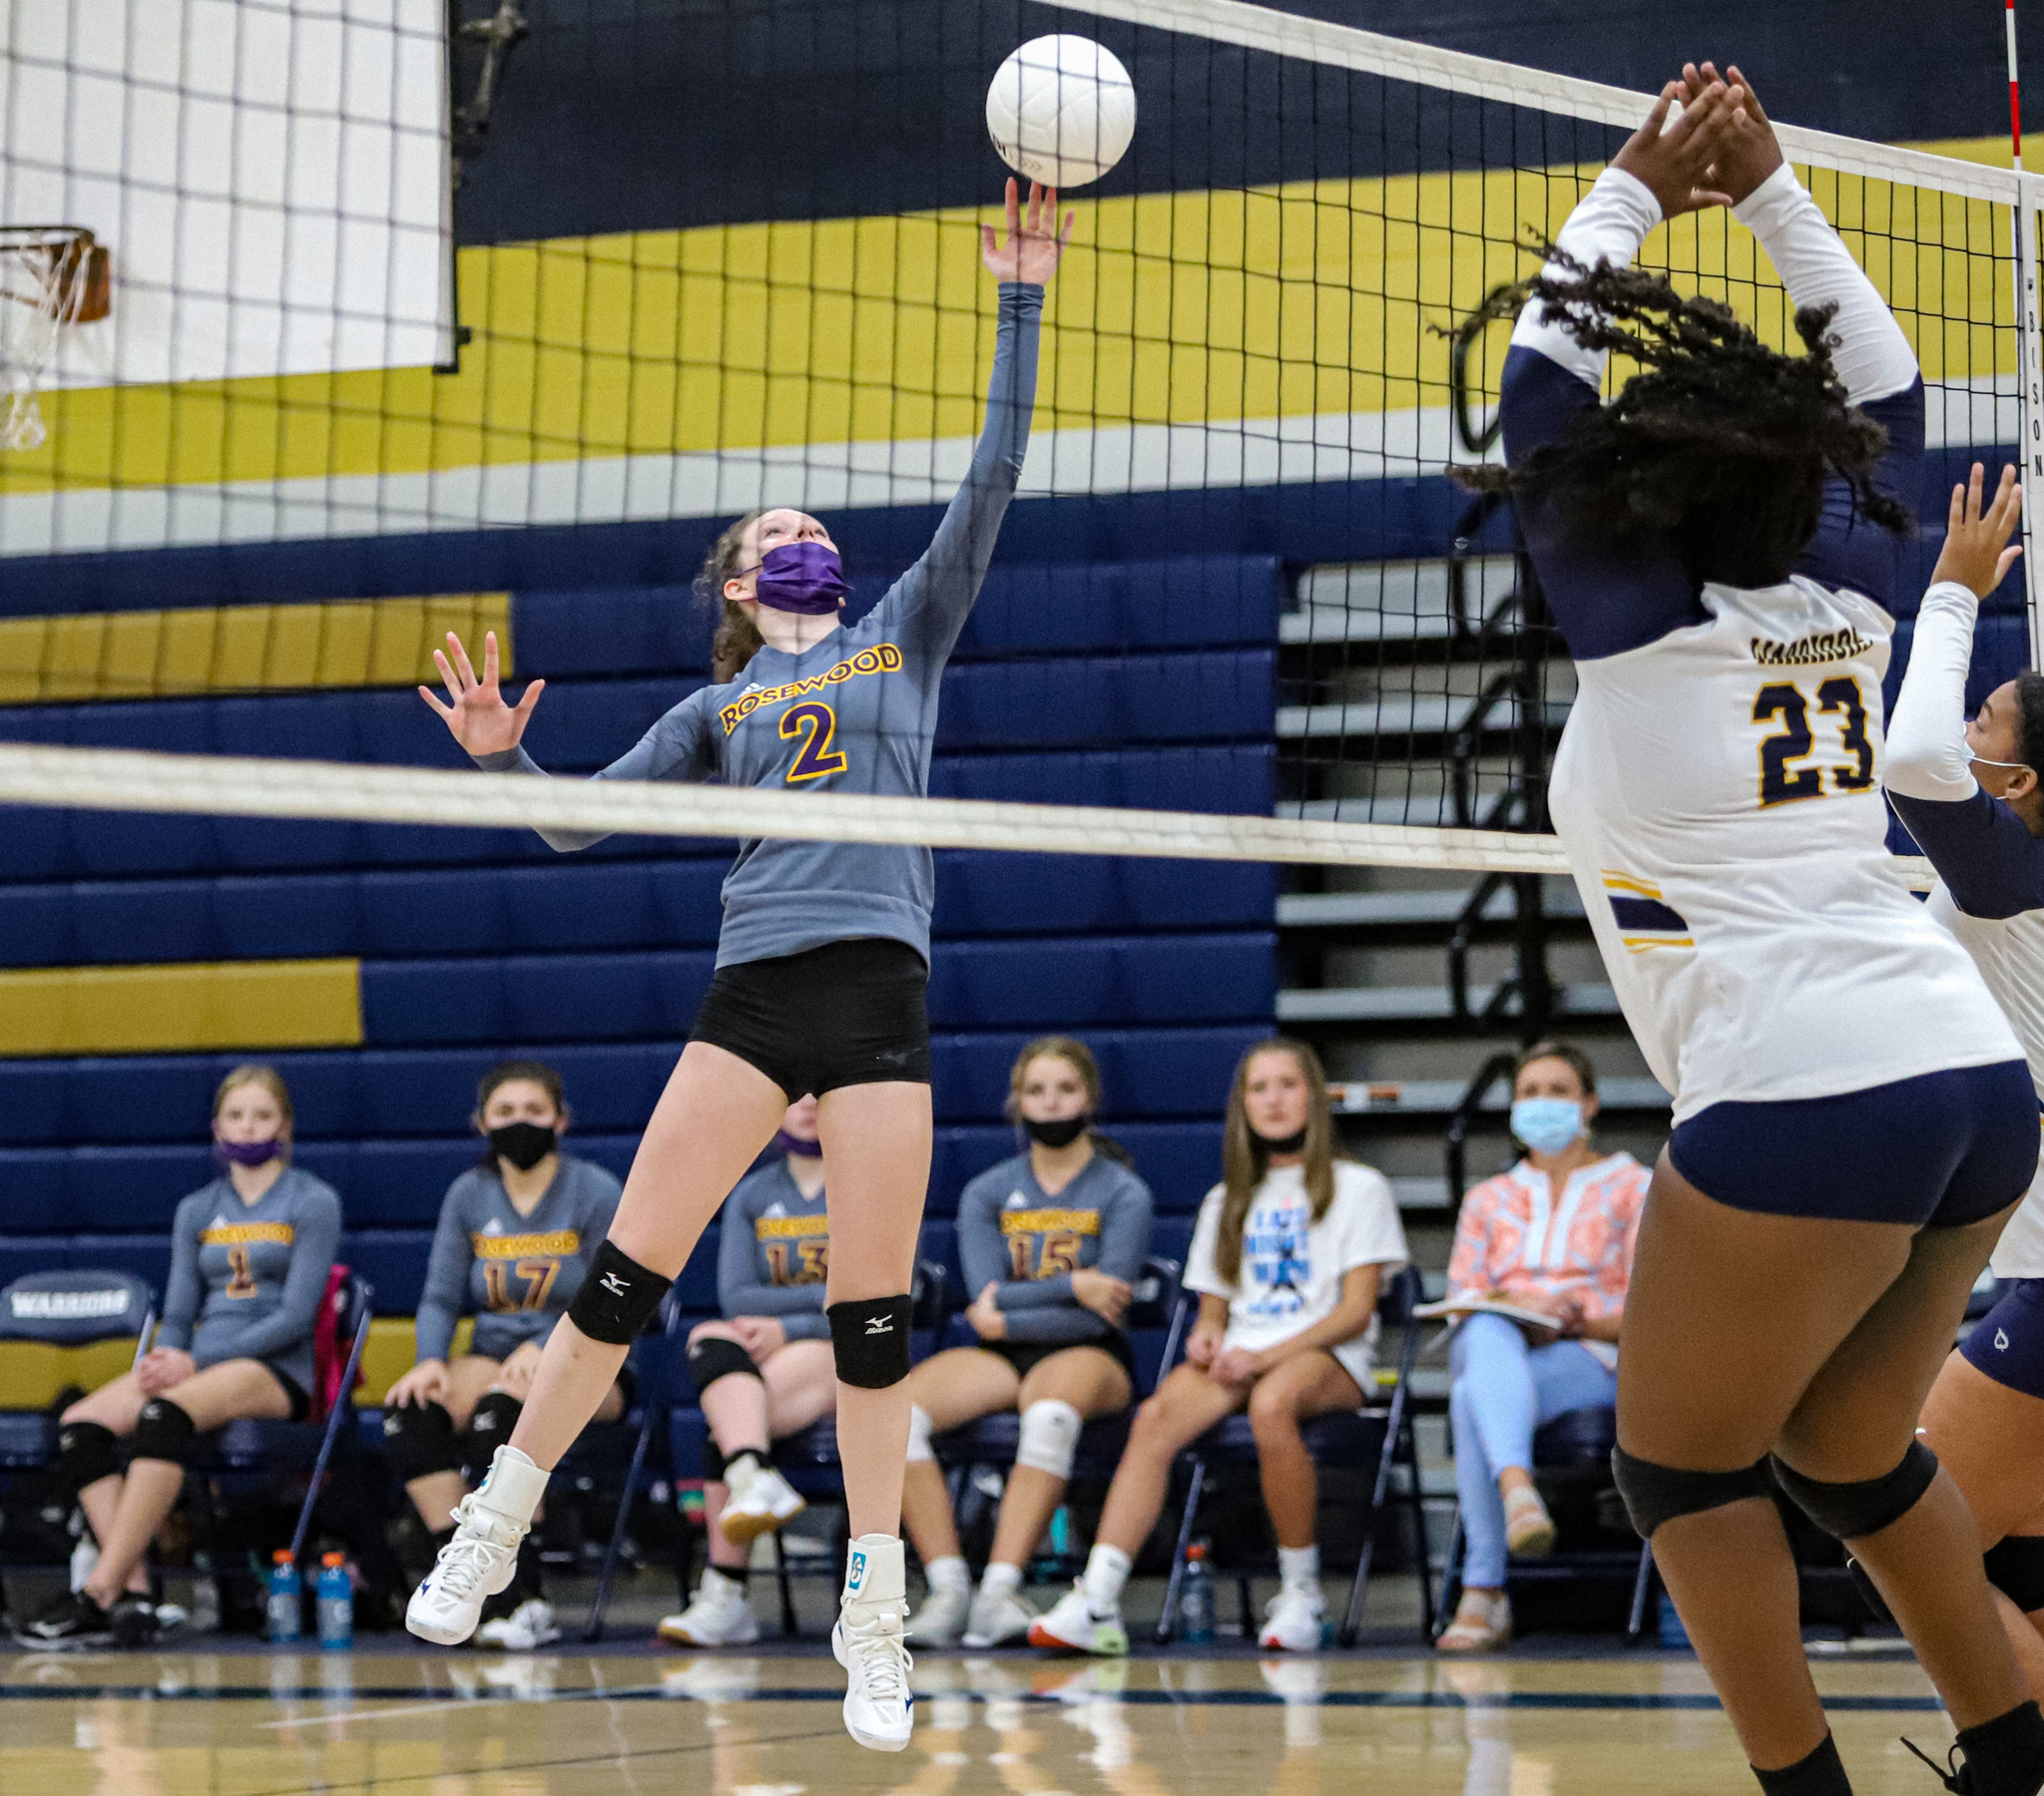 Volleyball: Rosewood Earns Four-set Win Over Eastern Wayne (PHOTO GALLERY)